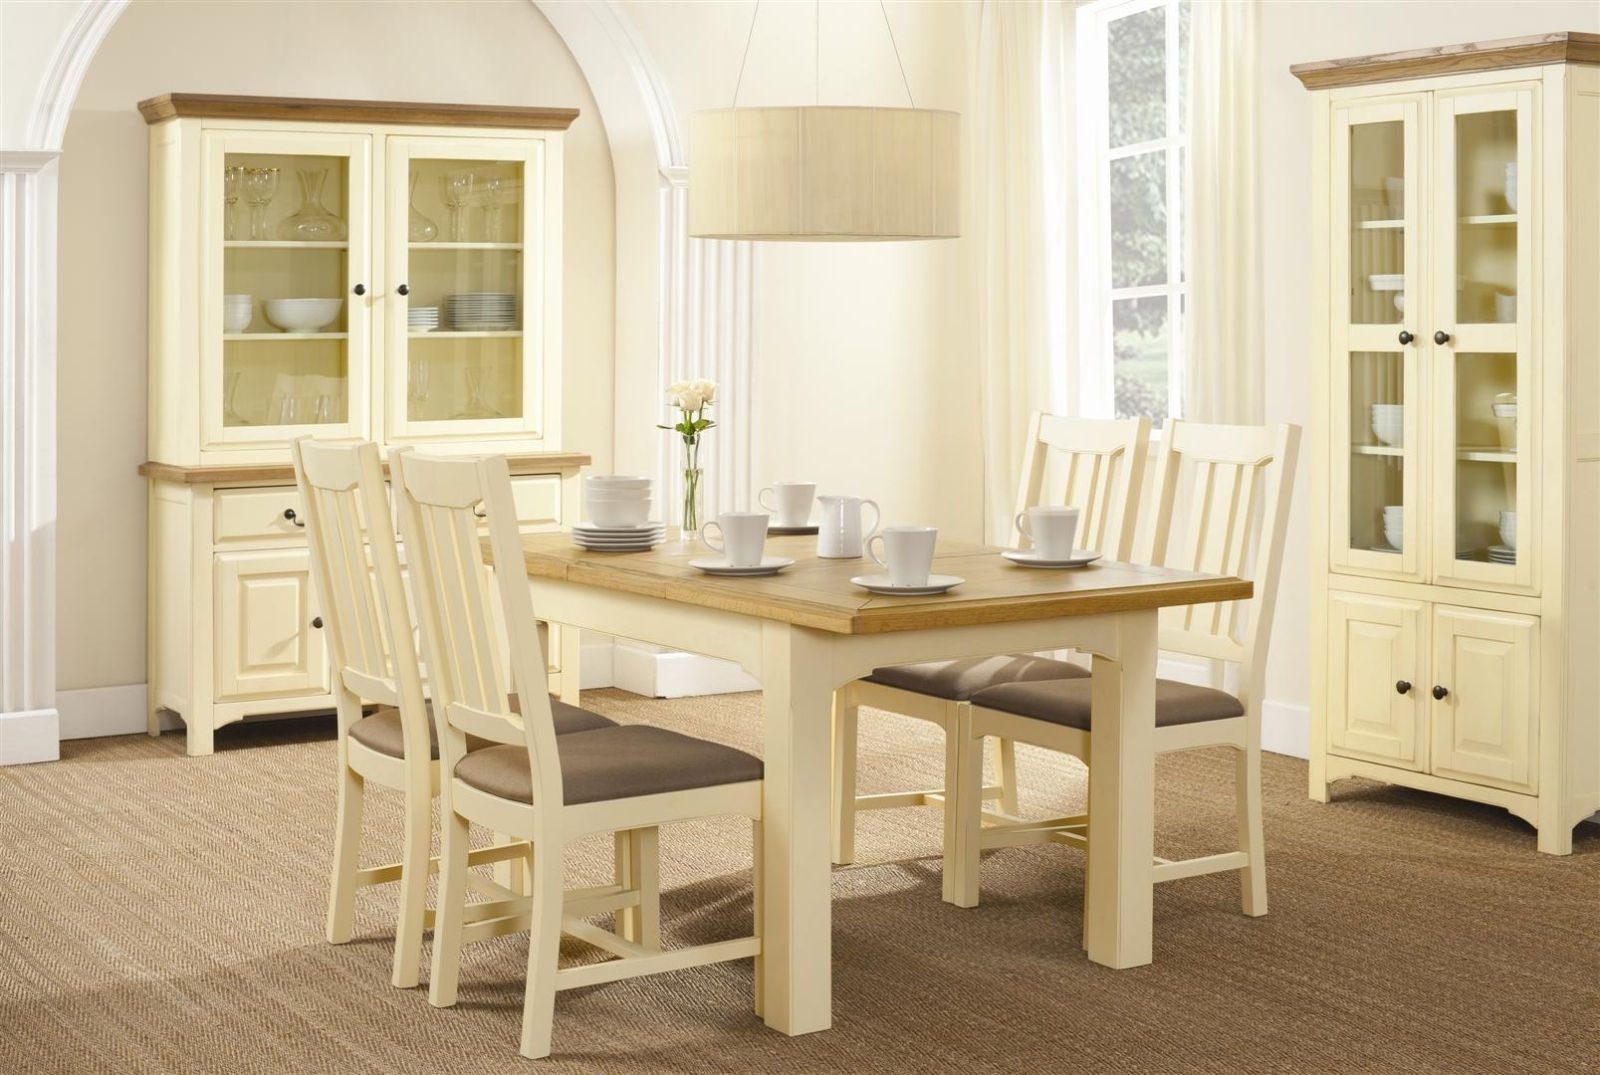 Luxury Cream Colored Dining Room Chairs 9 For Your Home Kitchen ...